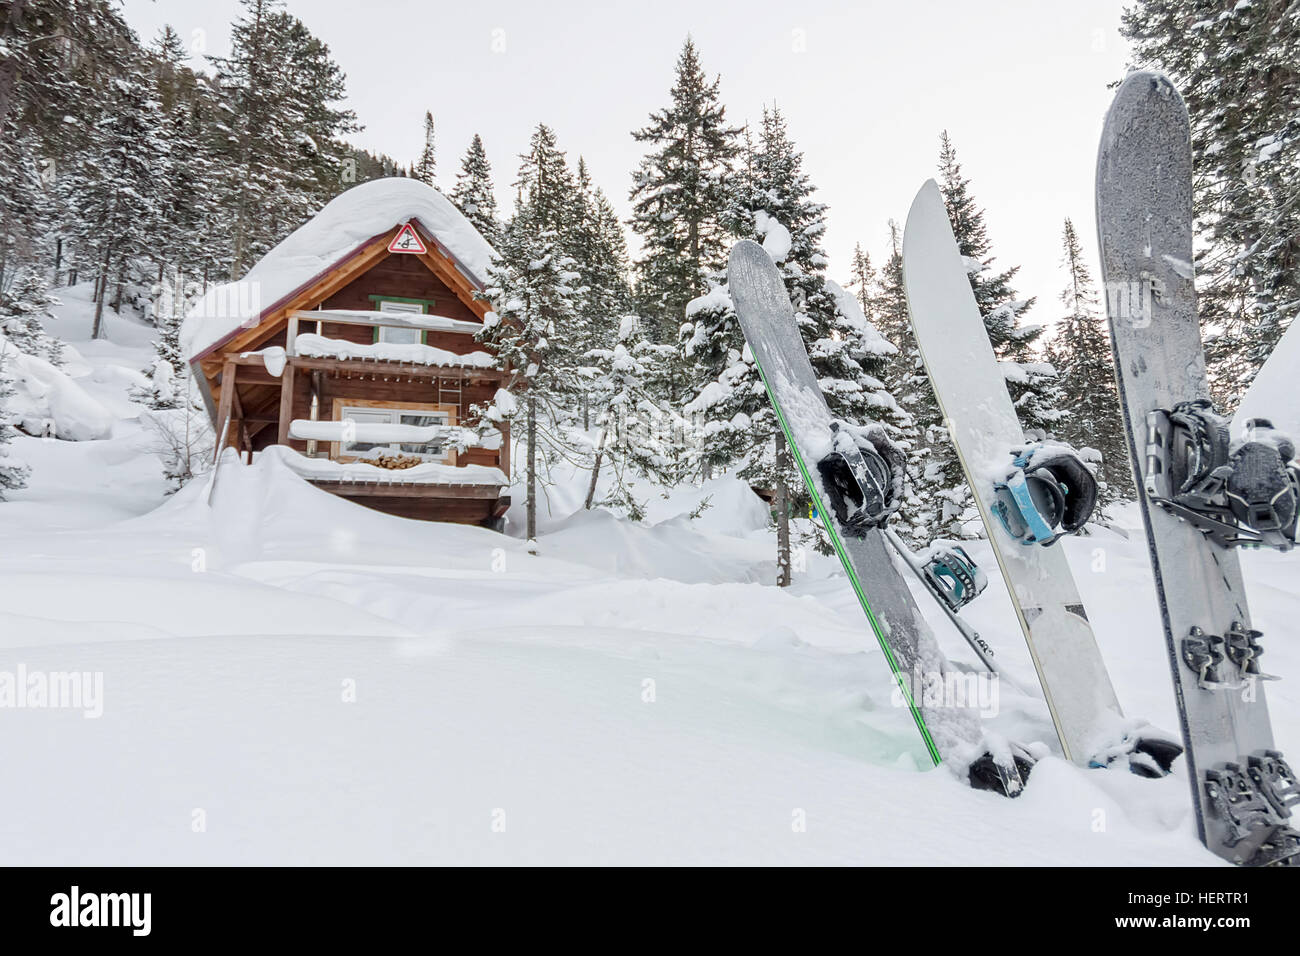 Snowboard at house chalets in winter forest with snow in mountains. - Stock Image